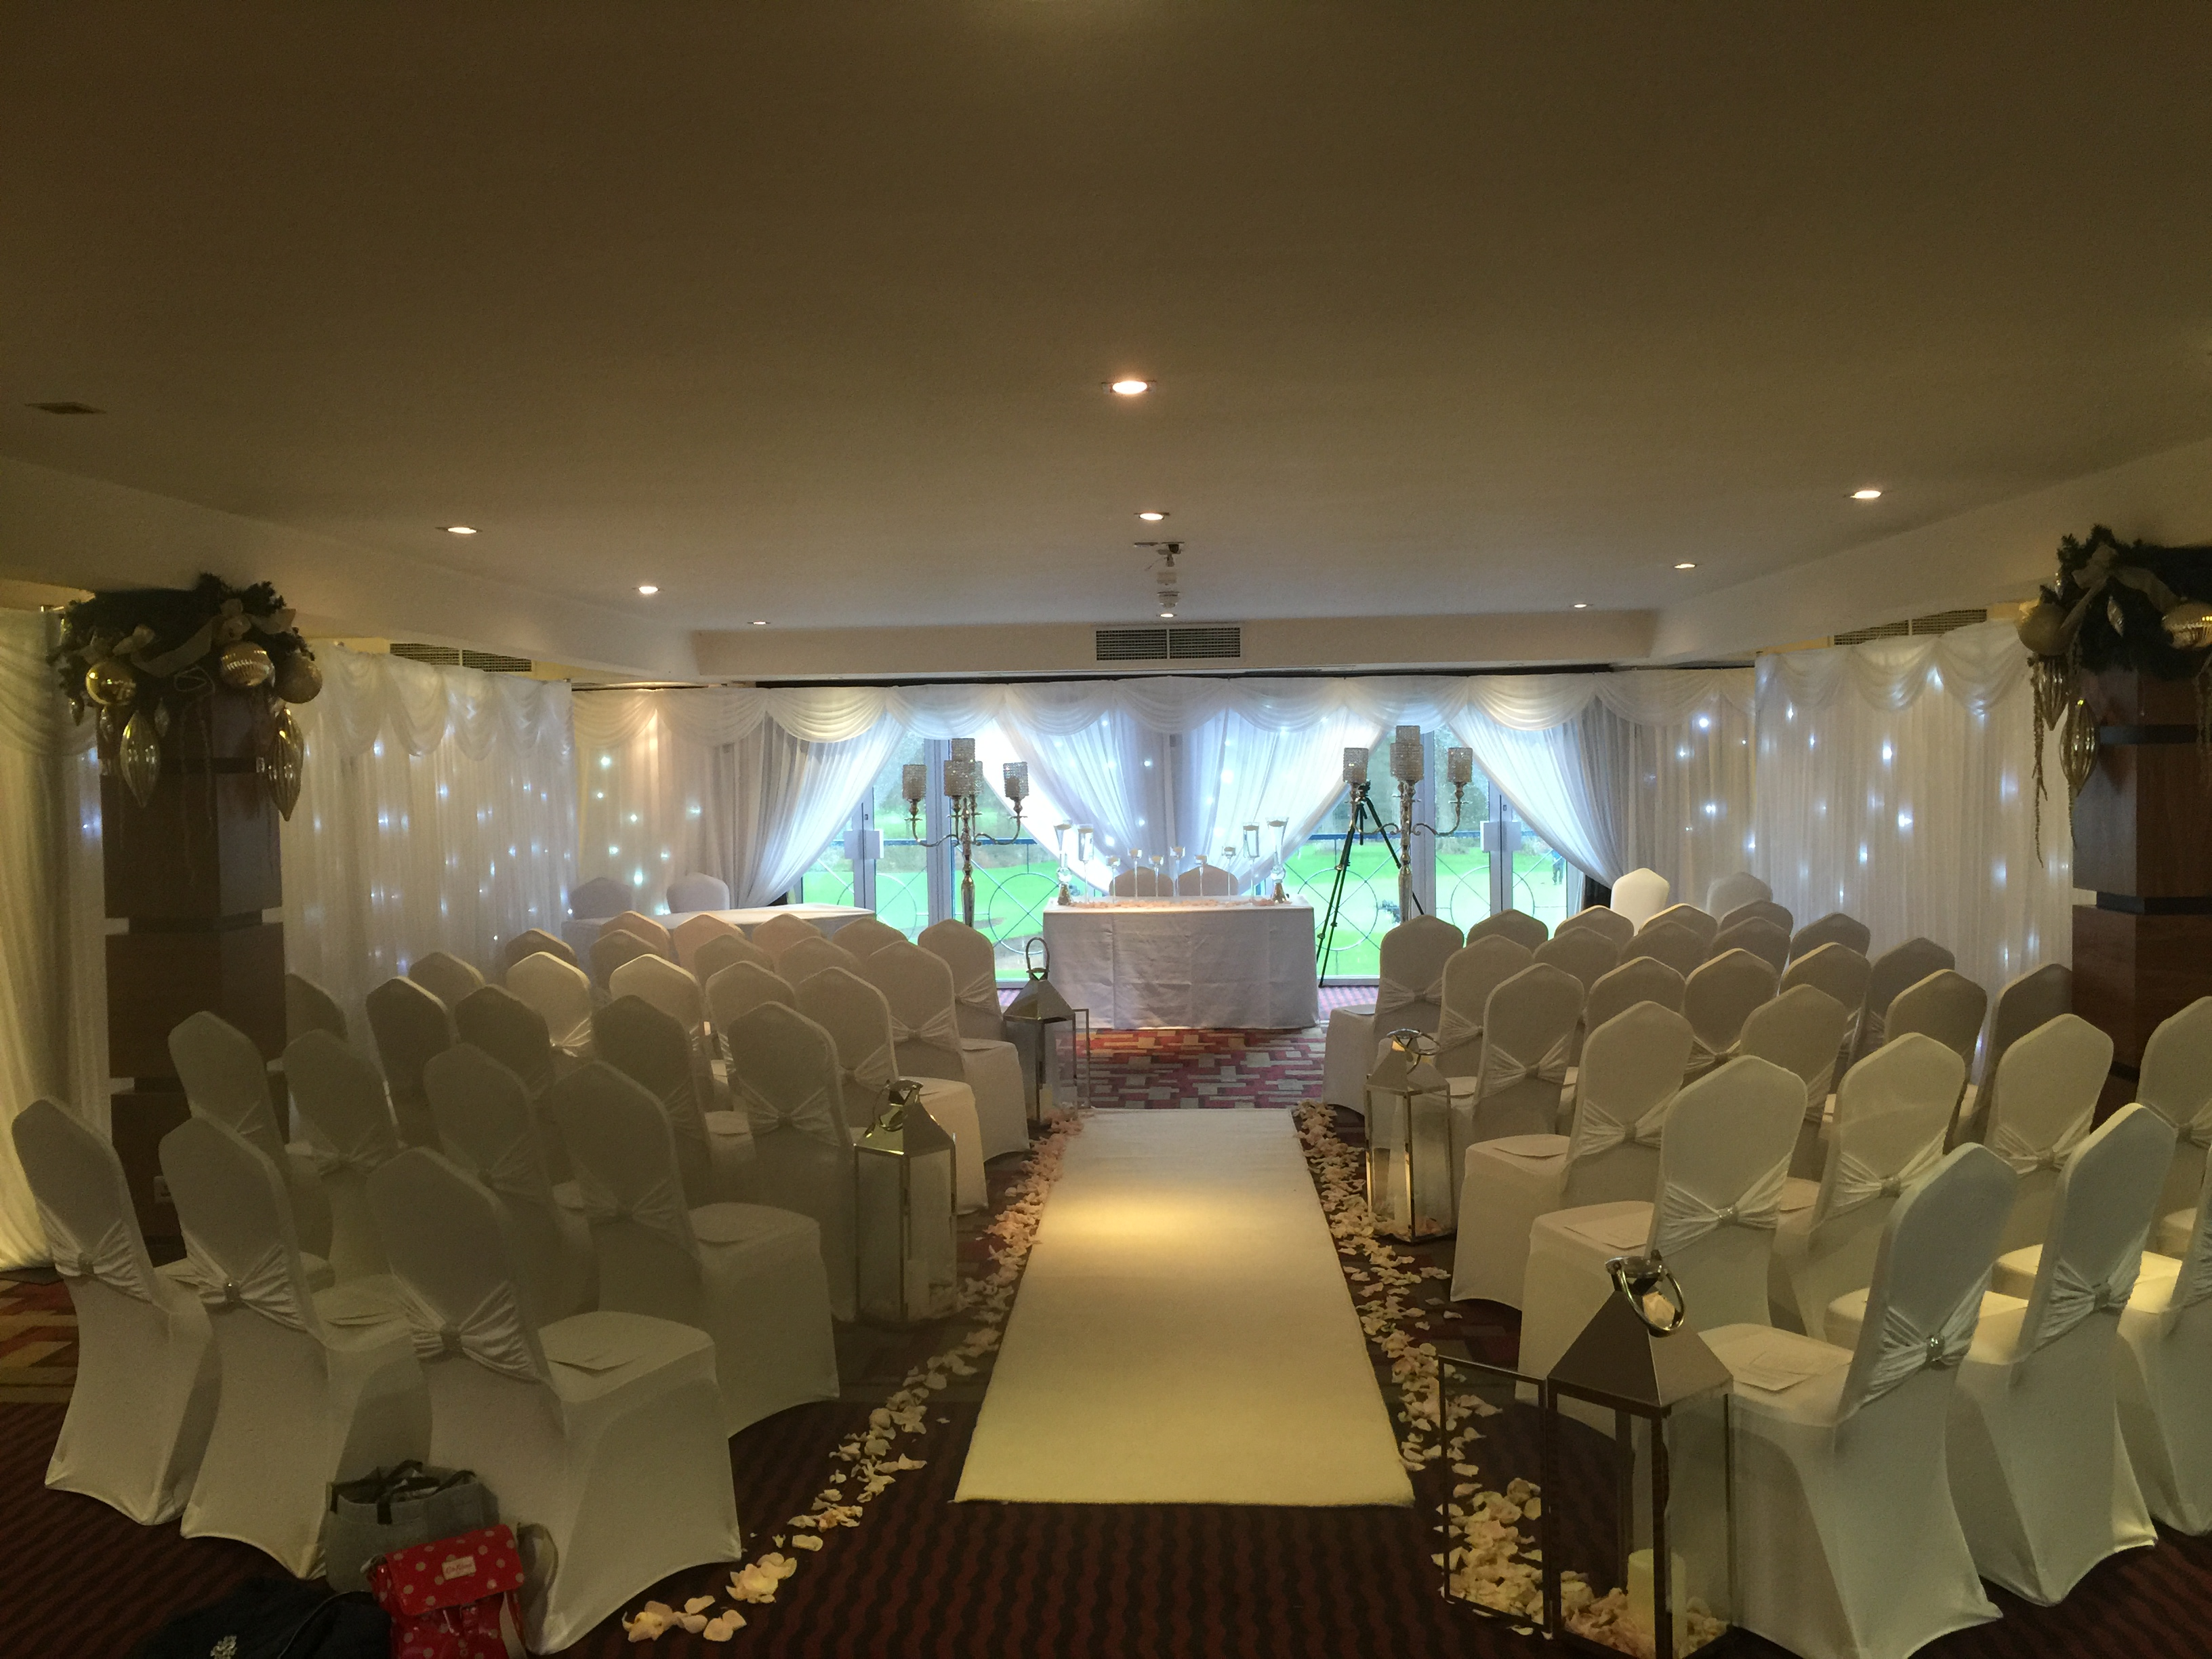 chair cover hire wigan chicco hook on highchair recall wall drapes liverpool cheshire manchester